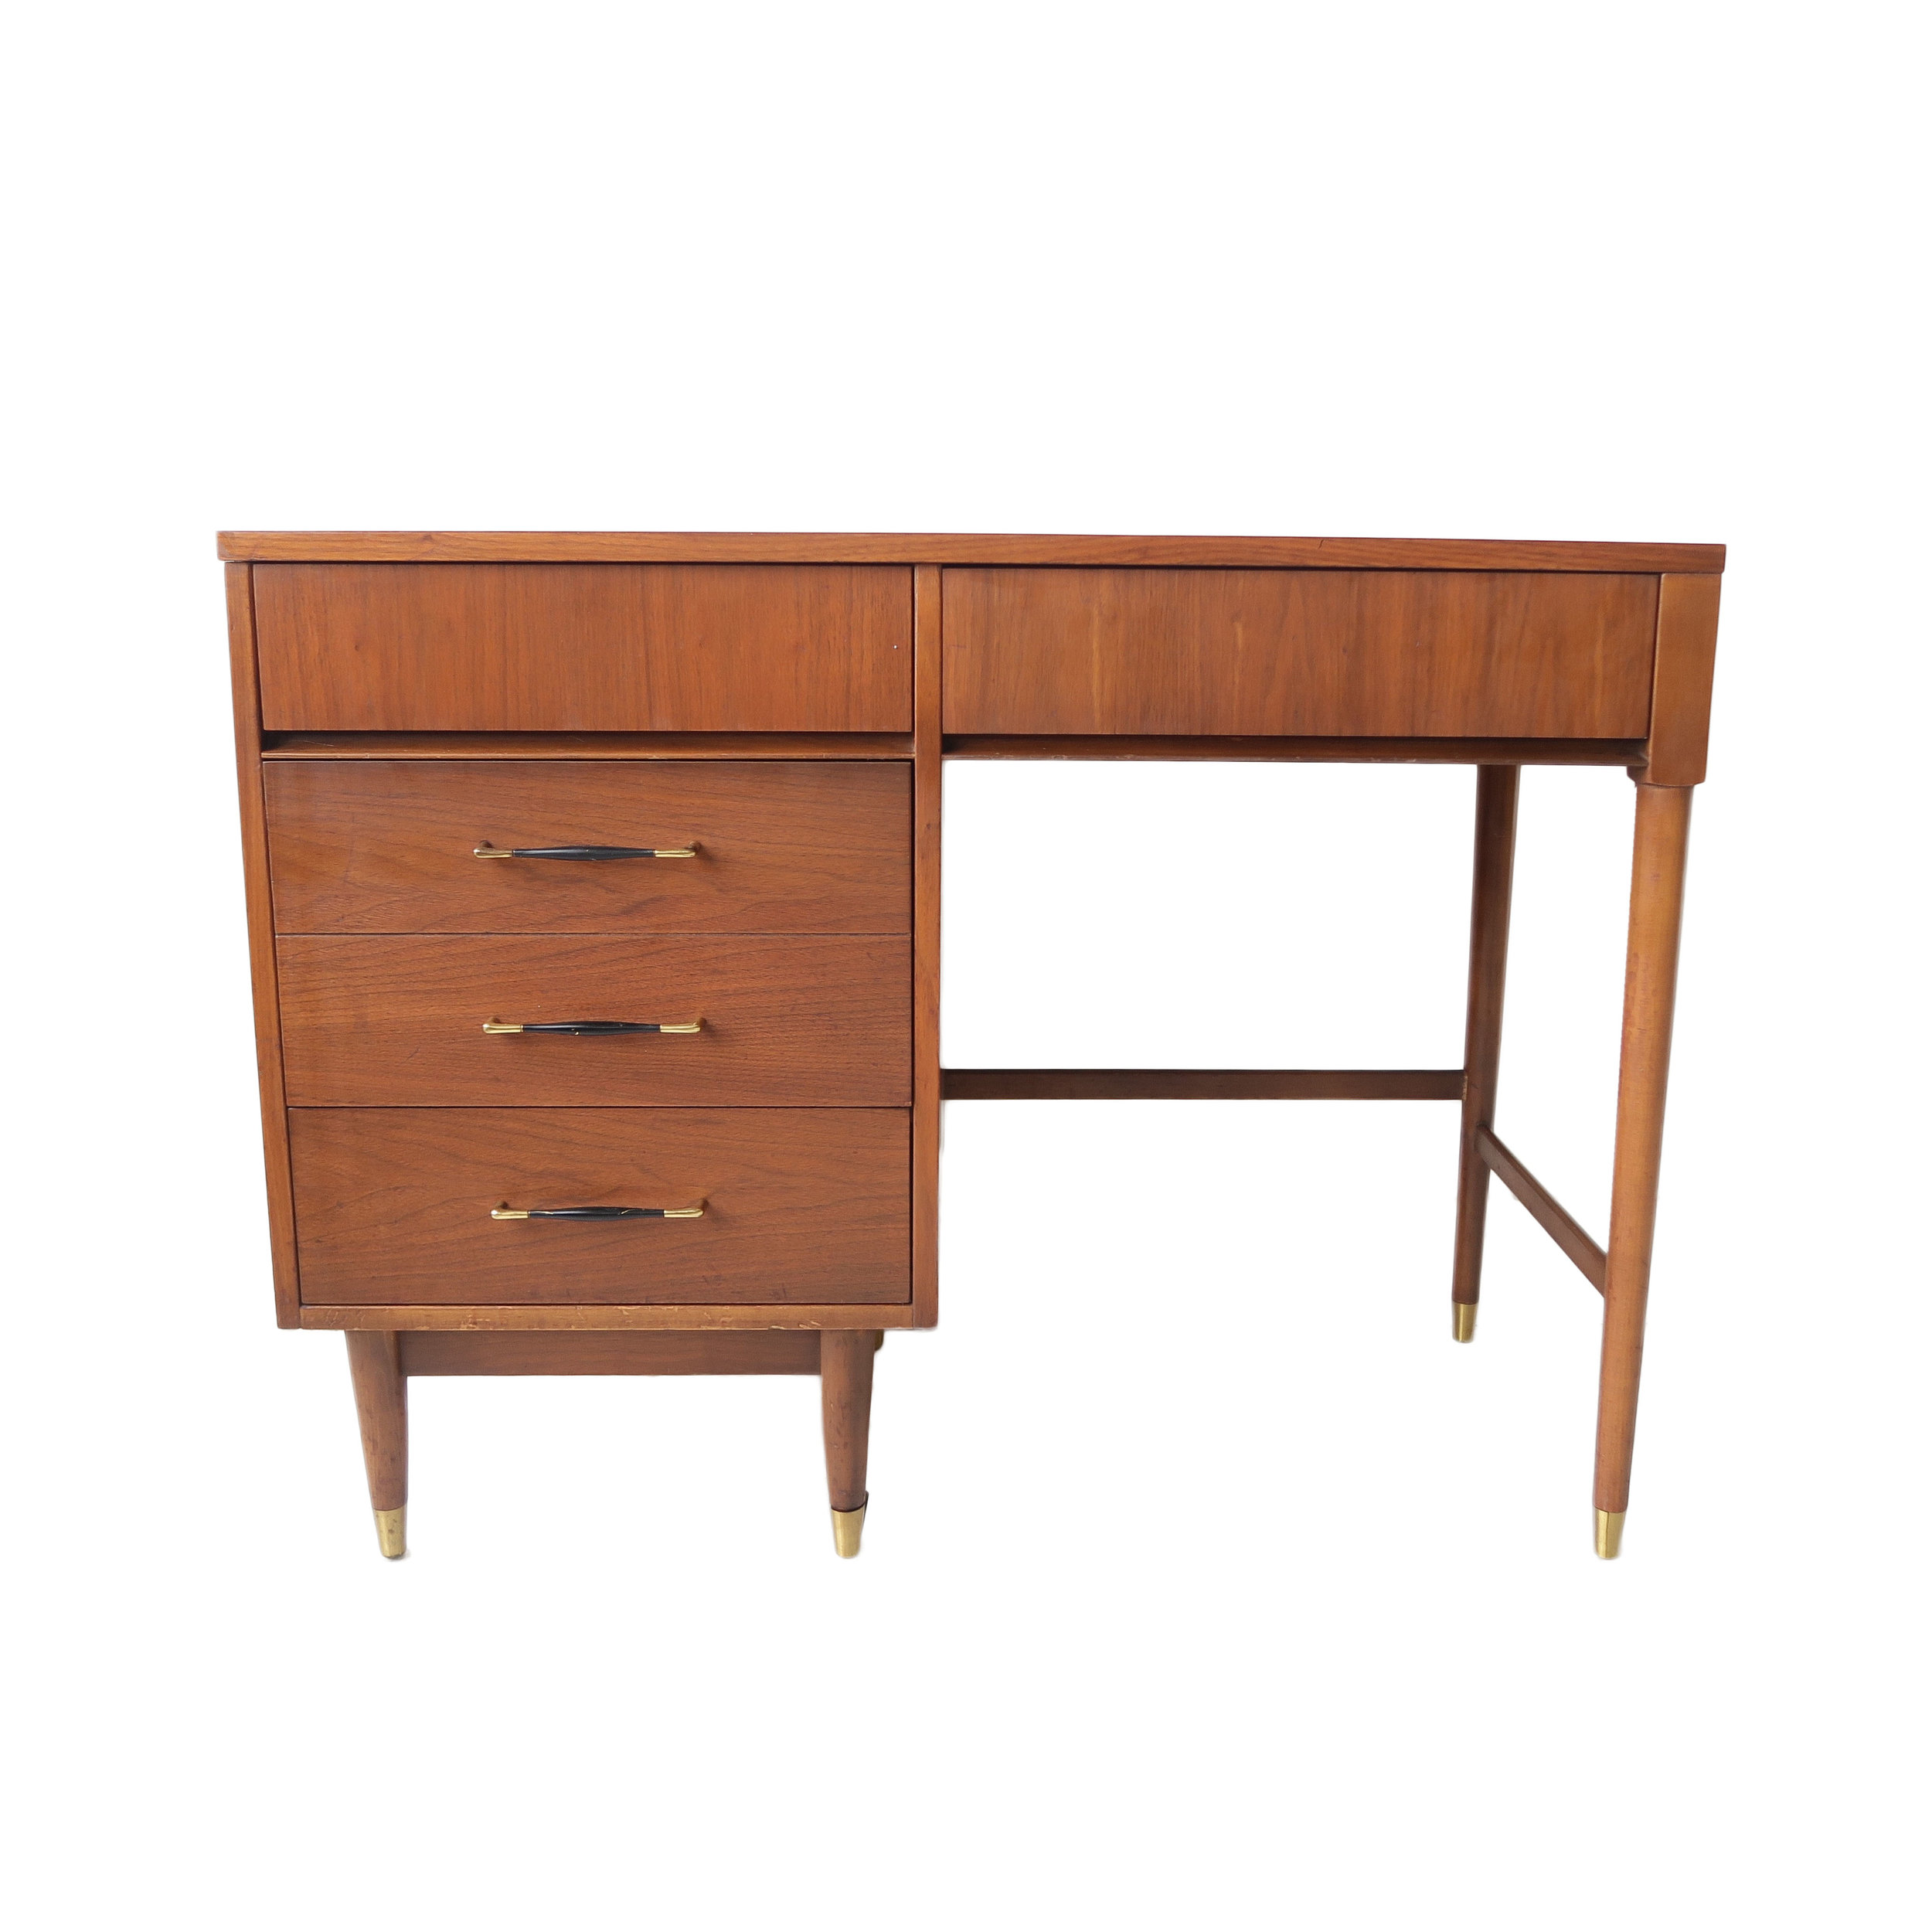 Image of: At 1st Sight New Products Vintage Mid Century Modern Floating Desk